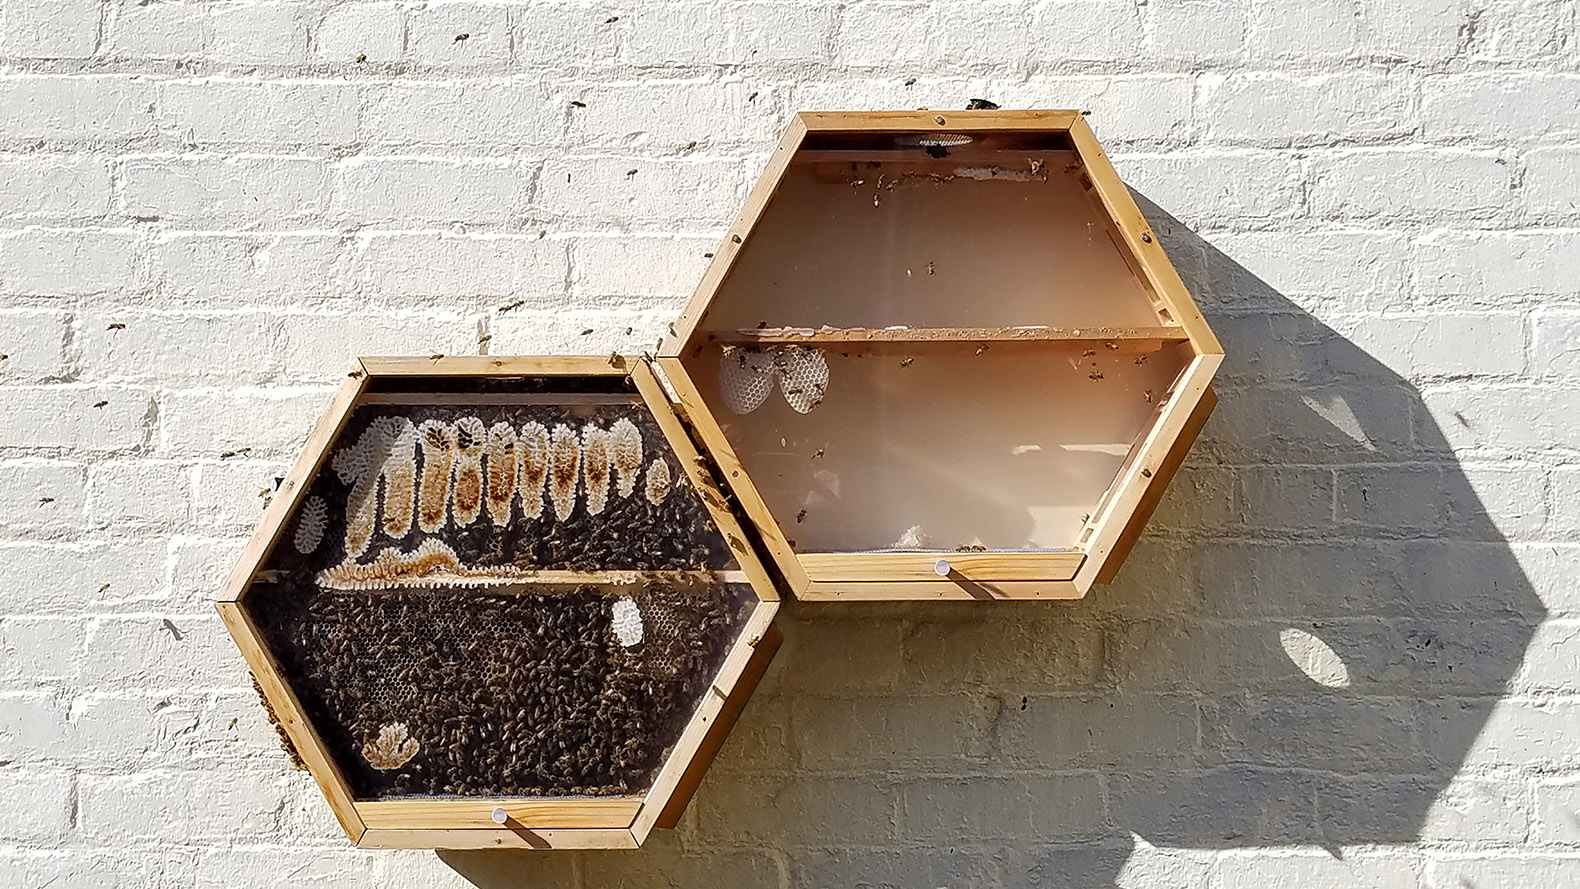 BEEcosystem observation hives can be installed inside or outdoors